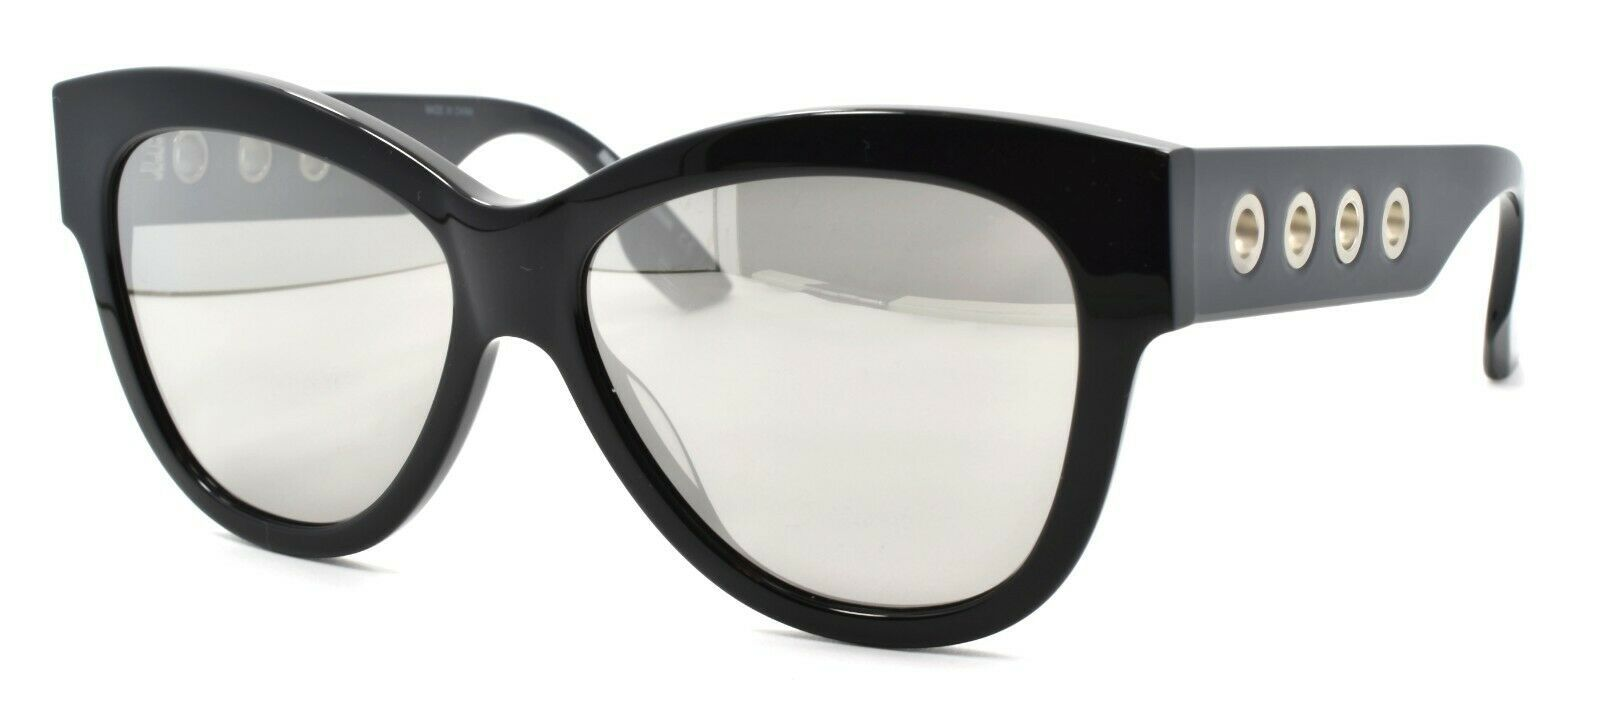 Primary image for McQ Alexander McQueen MQ0021S 002 Women's Sunglasses Cat Eye Black / Mirrored